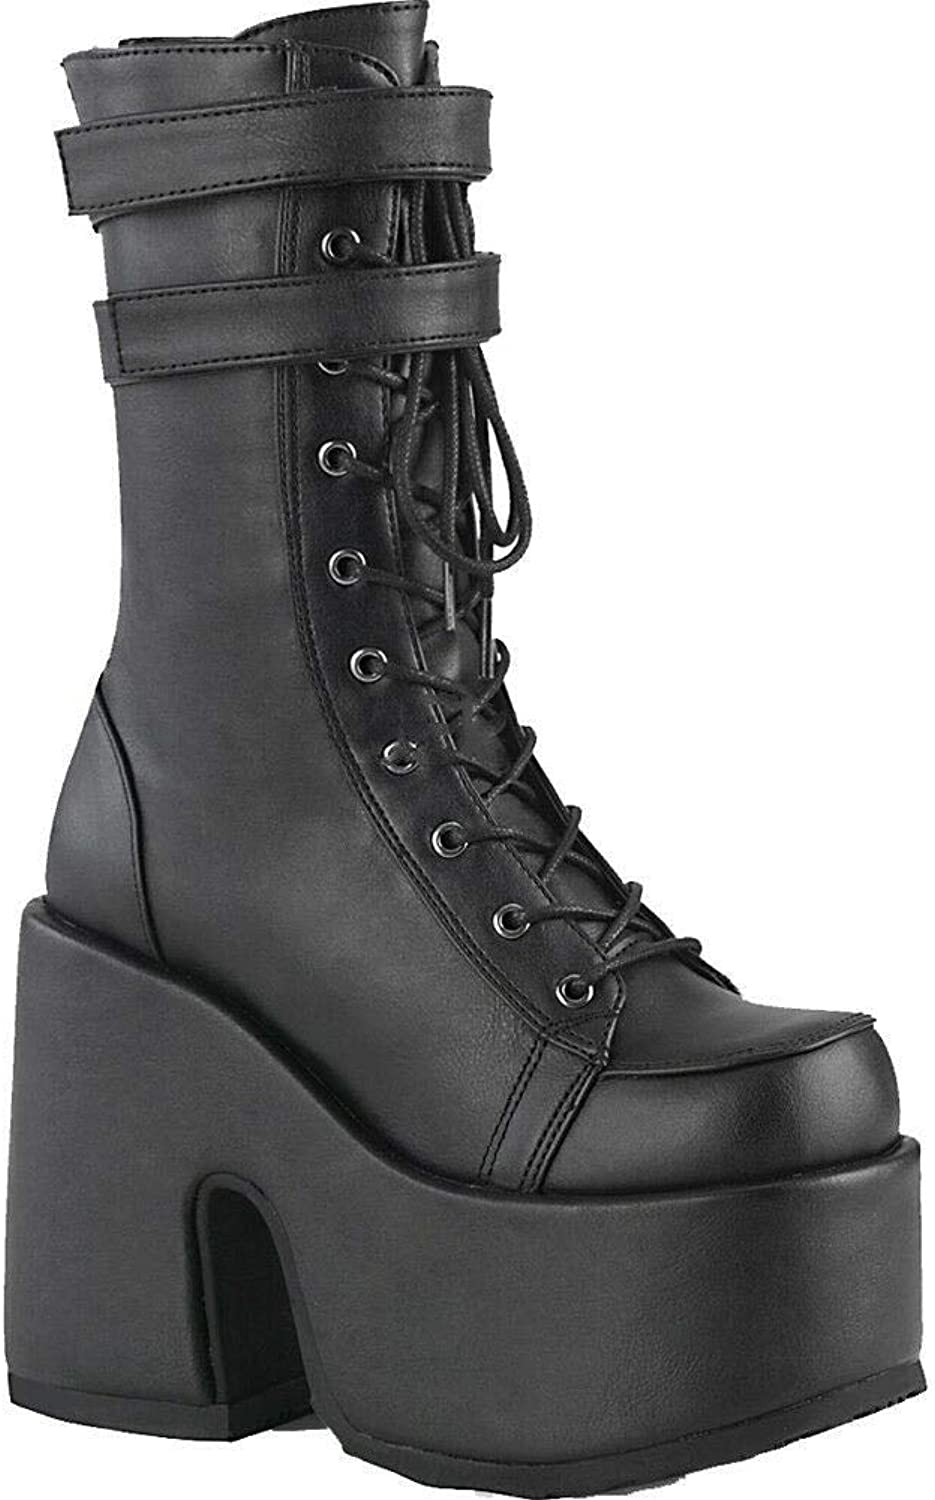 Demonia Women's CAMEL-250 Platform Mid-Calf Boot Black